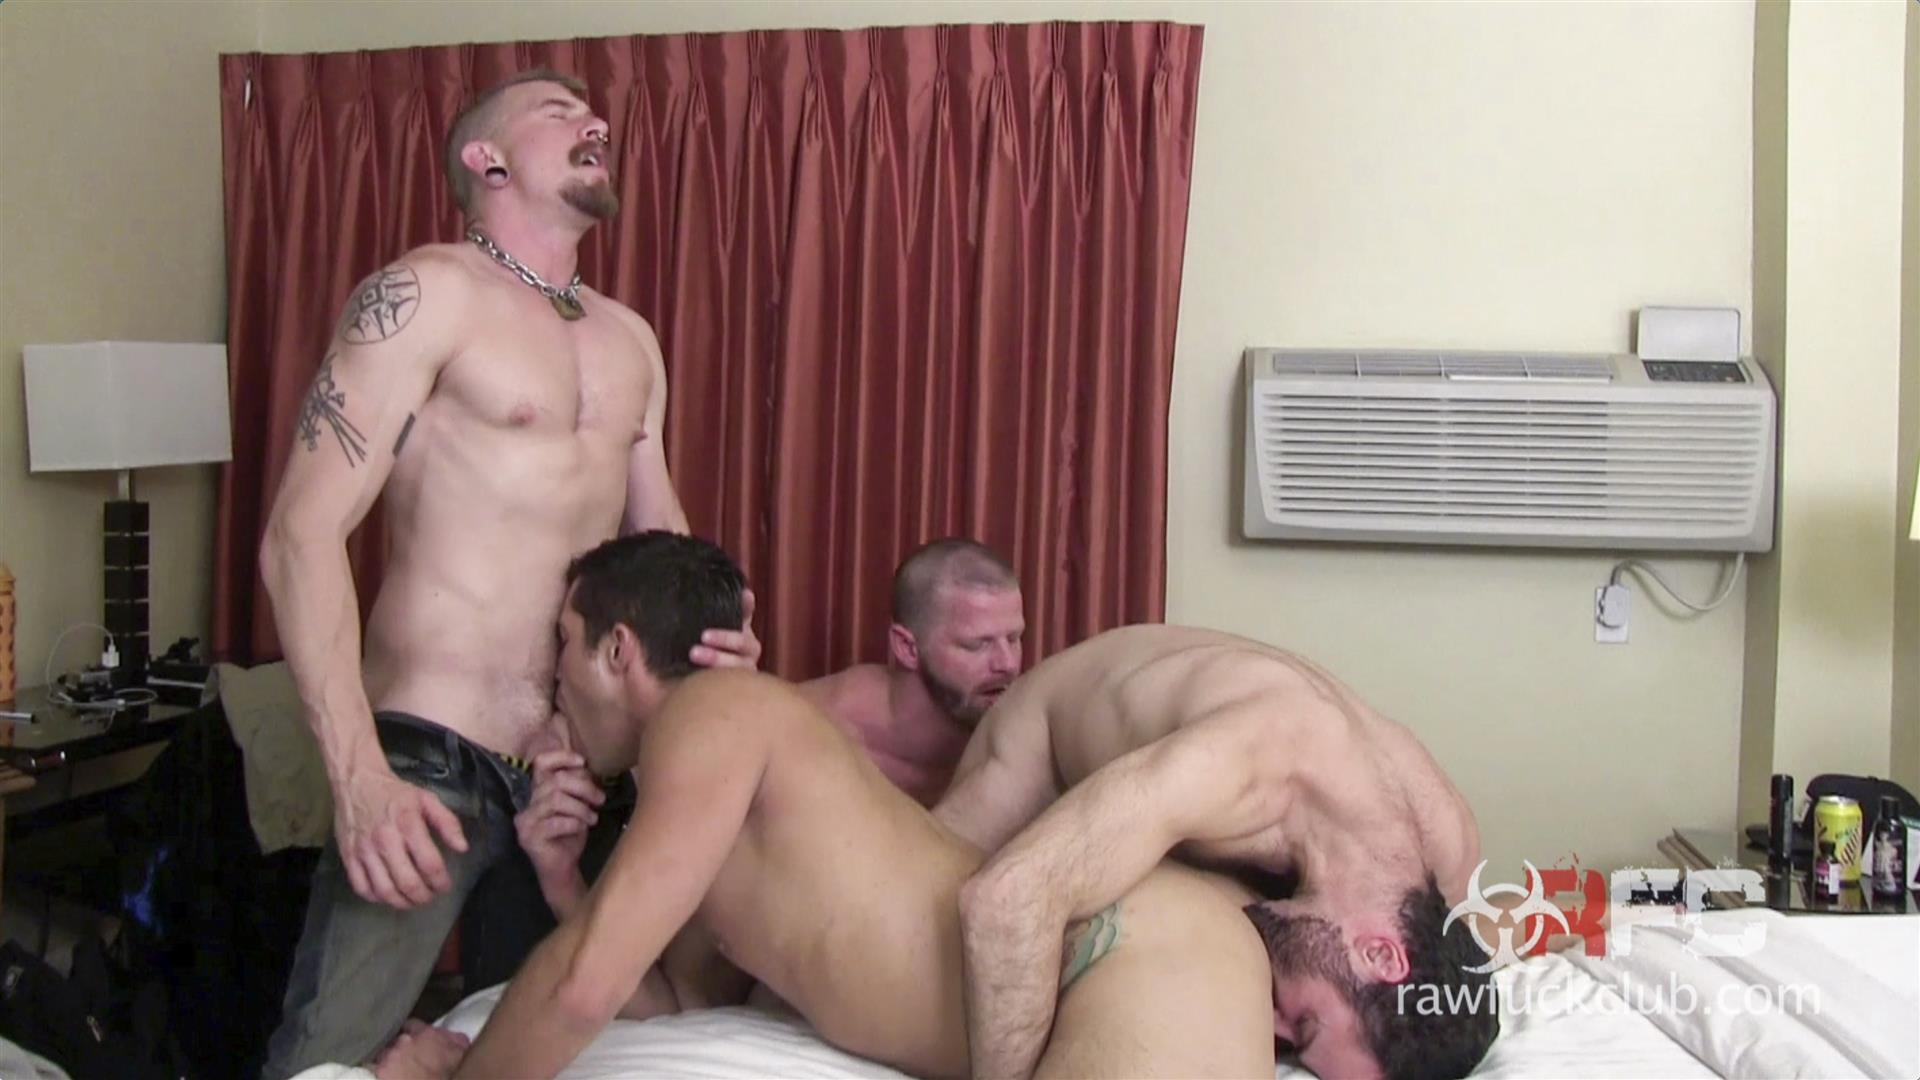 Raw-Fuck-Club-Dylan-Saunders-and-Dusty-Williams-and-Jeff-Kendall-and-Jeremy-Stevens-BBBH-Amateur-Gay-Porn-05 Big Cock Amateur Hotel Bareback Sex Party